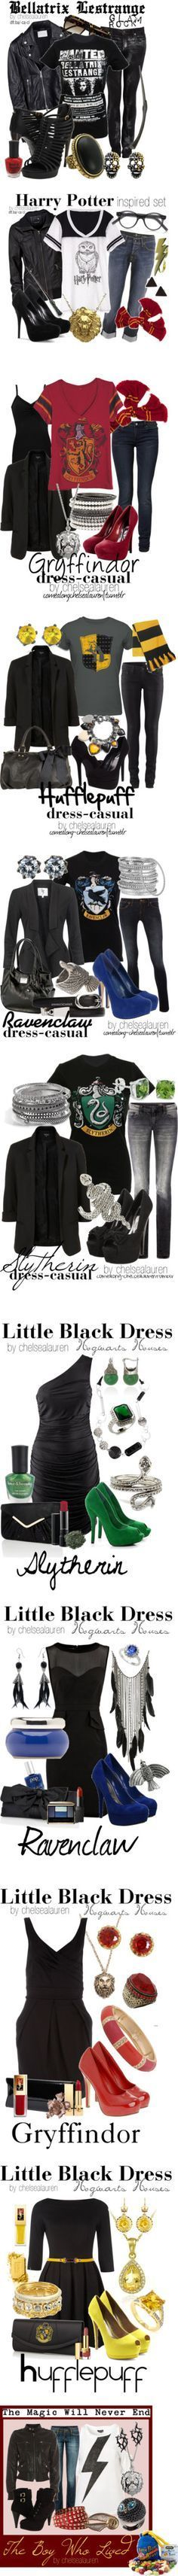 """""""Harry Potter"""" by chelsealauren10 on Polyvore ~ some of these outfits/accessories are kinda cute, plus its Harry Potter.. - COSPLAY IS BAEEE!!! Tap the pin now to grab yourself some BAE Cosplay leggings and shirts! From super hero fitness leggings, super hero fitness shirts, and so much more that wil make you say YASSS!!!"""